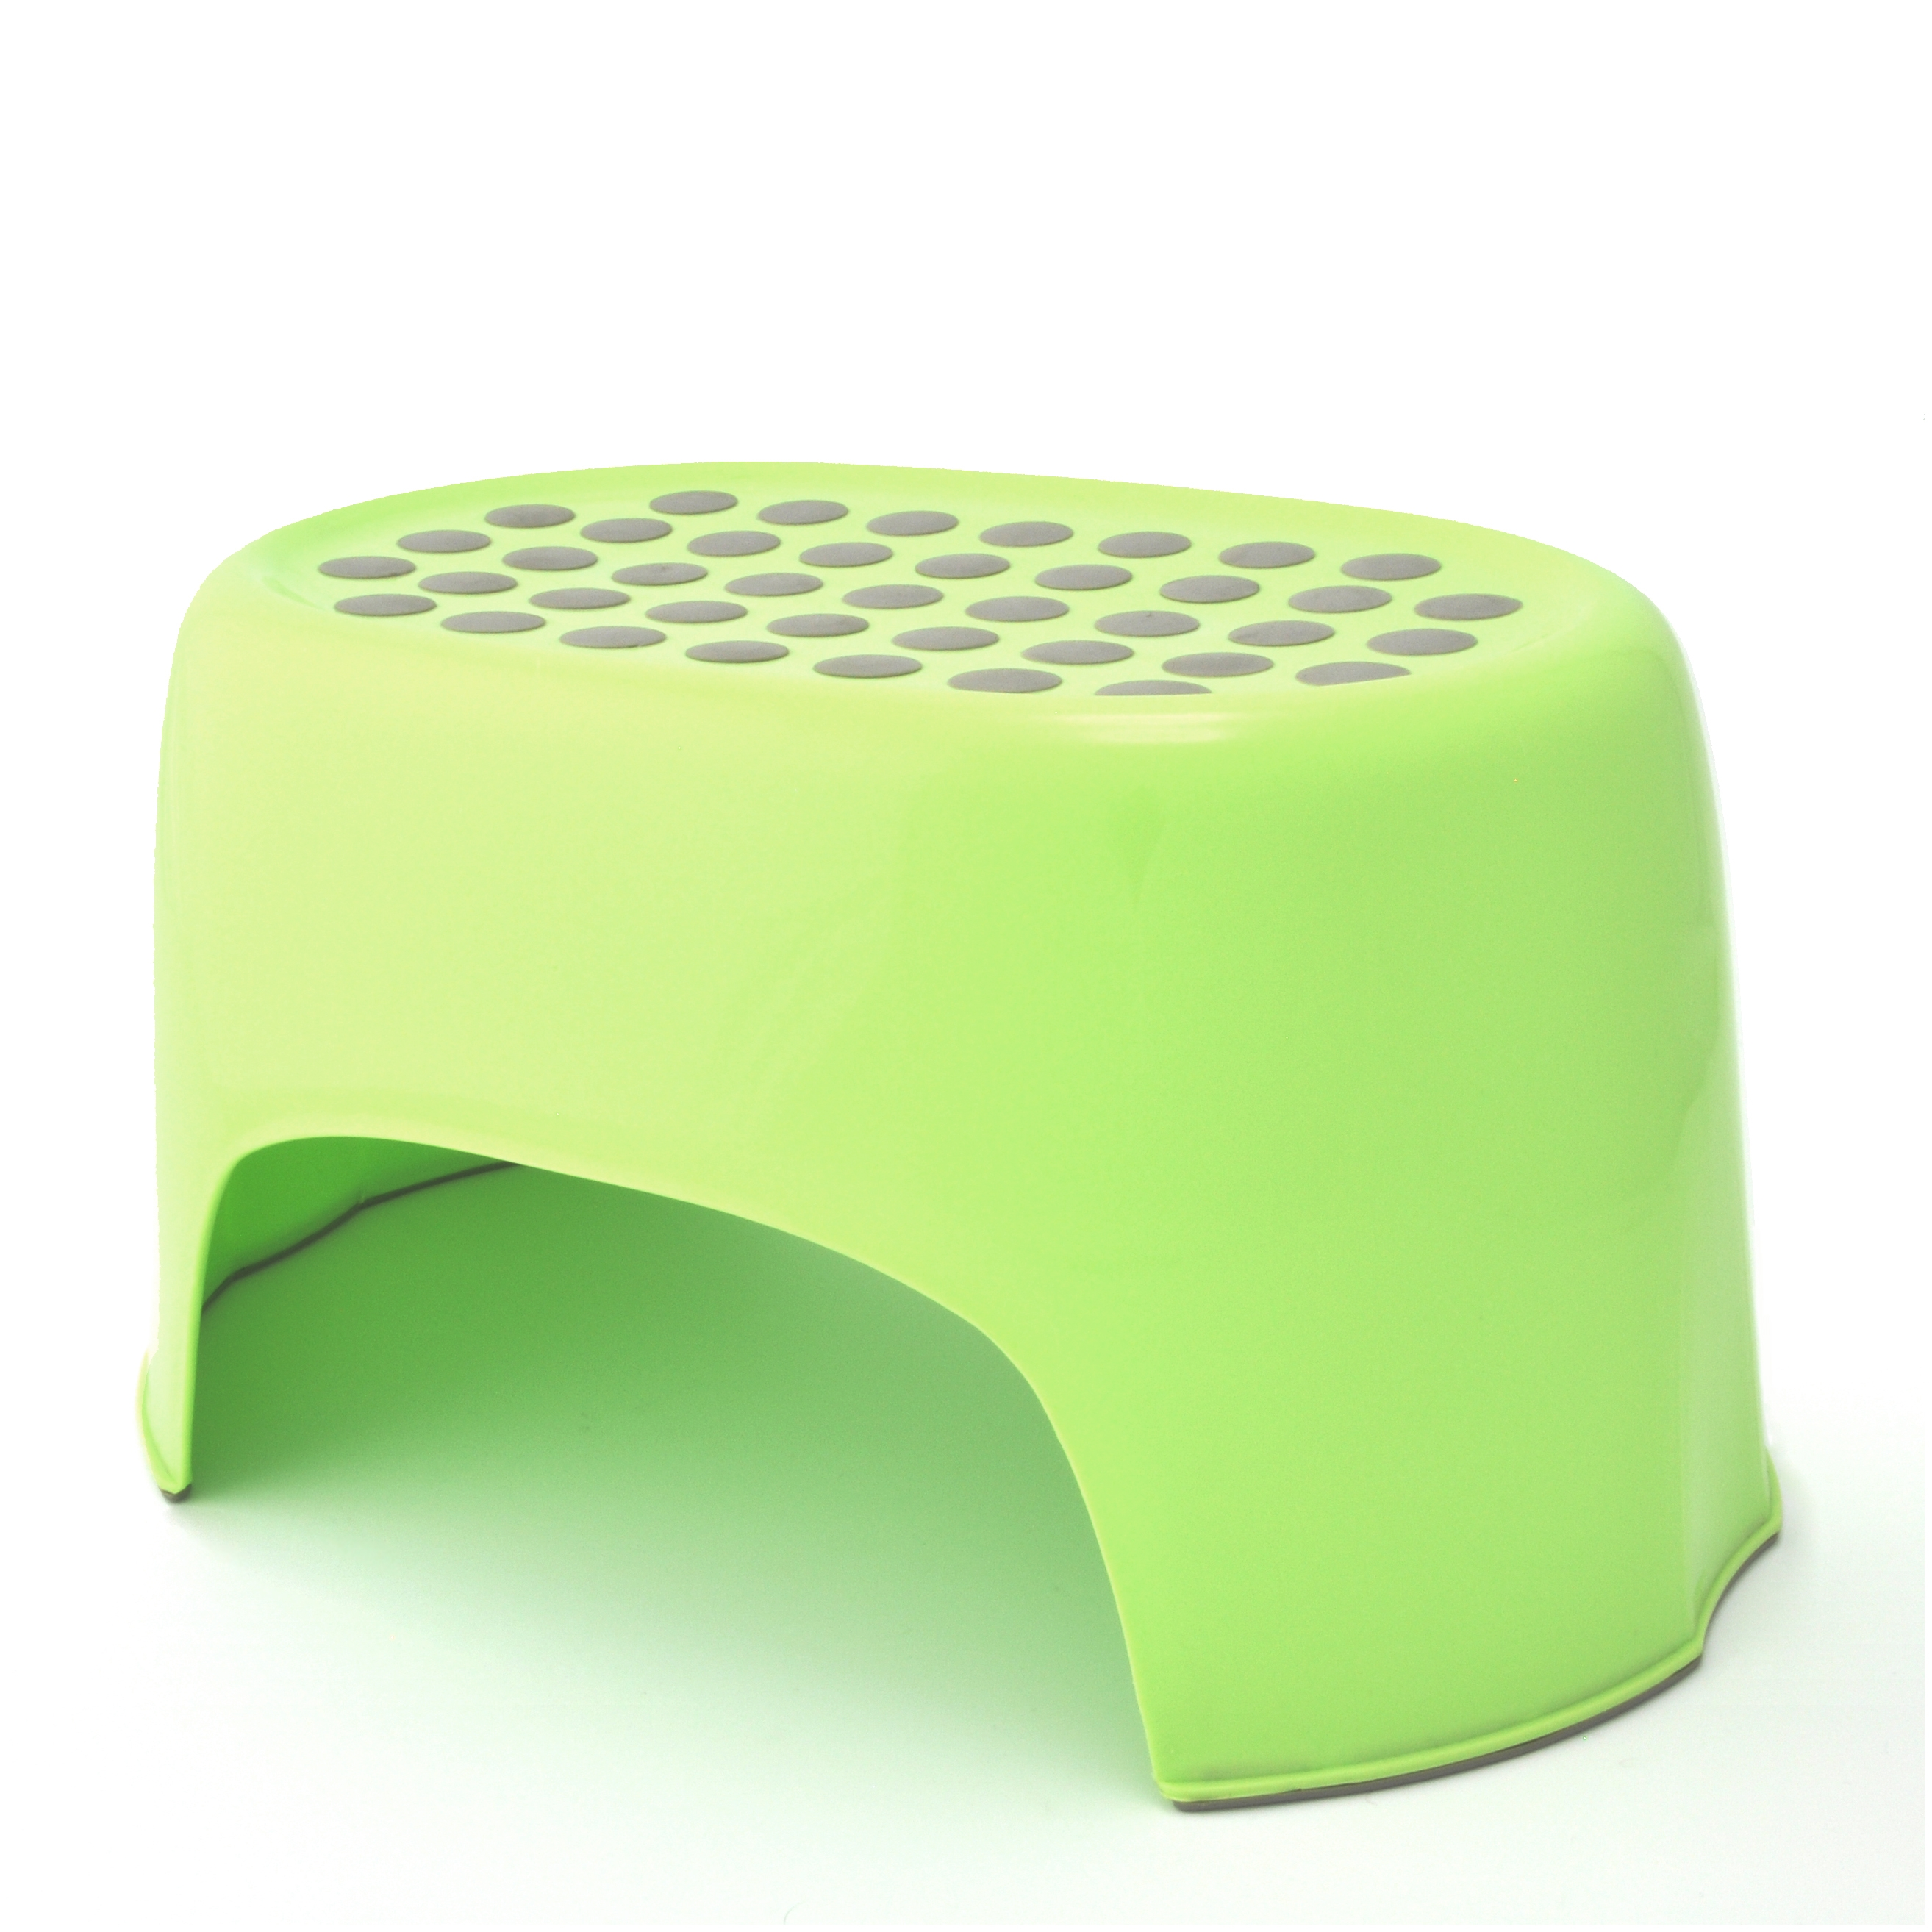 Last Chance Jahgoo Step Stool Giveaway Ends Today